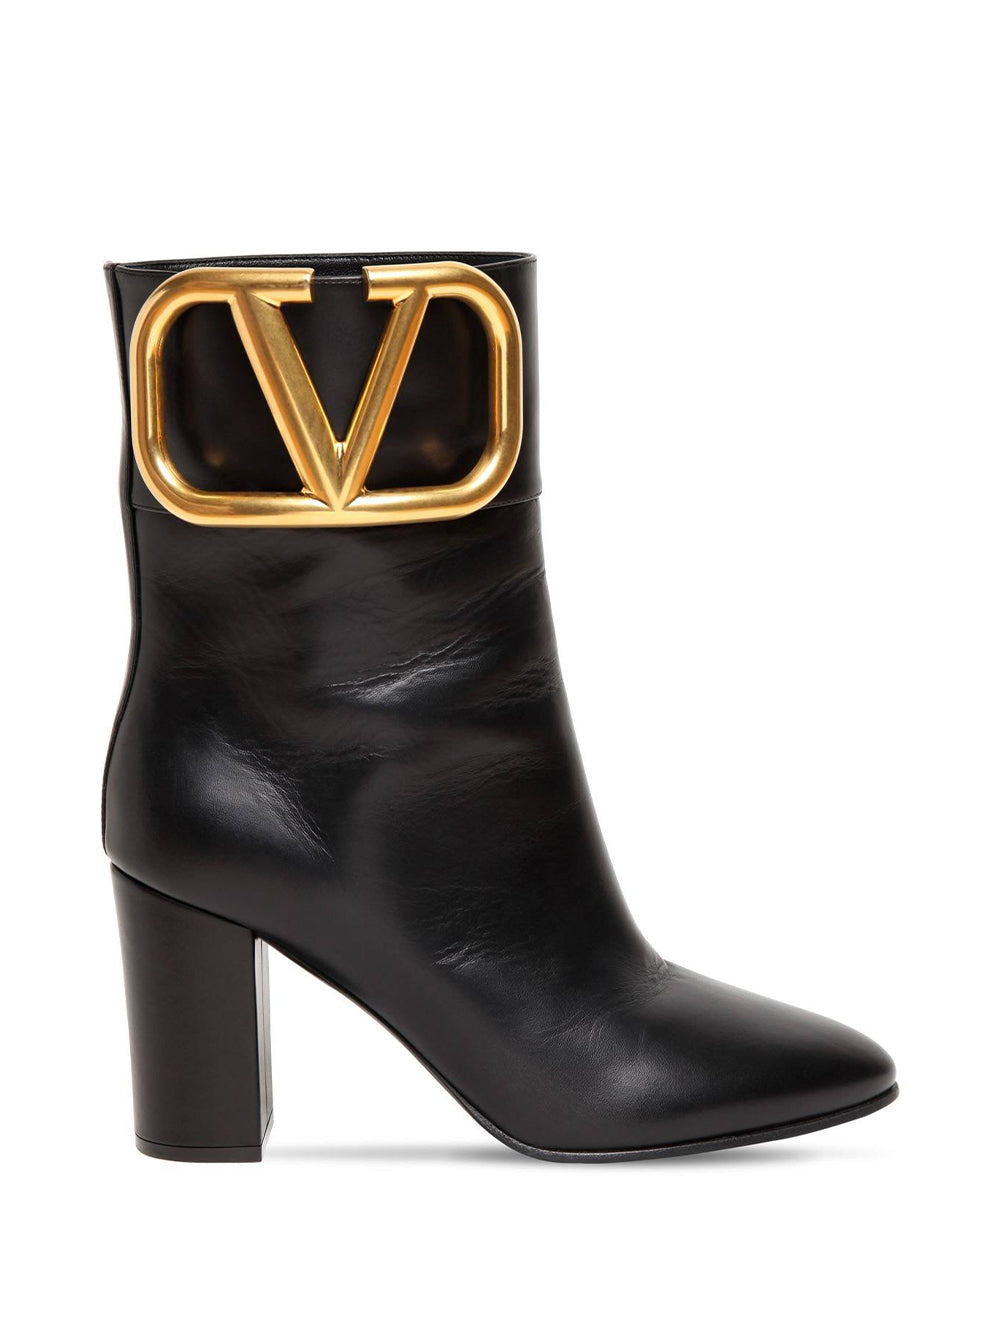 Valentino Garavani Leather Ankle Boots With VLogo